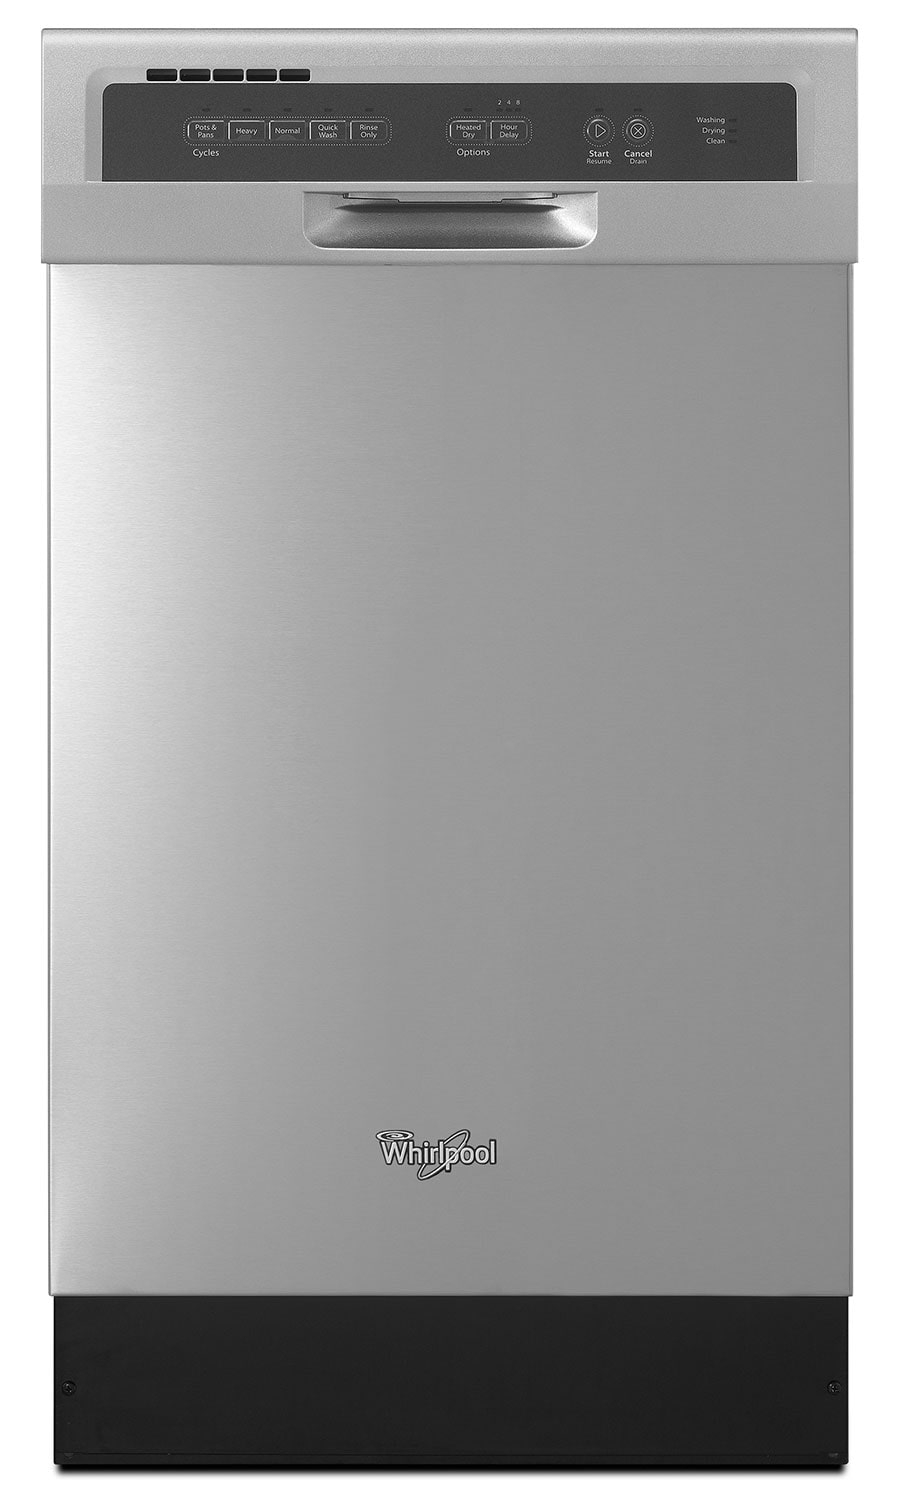 Clean-Up - Whirlpool Compact Tall-Tub Dishwasher – WDF518SAFM